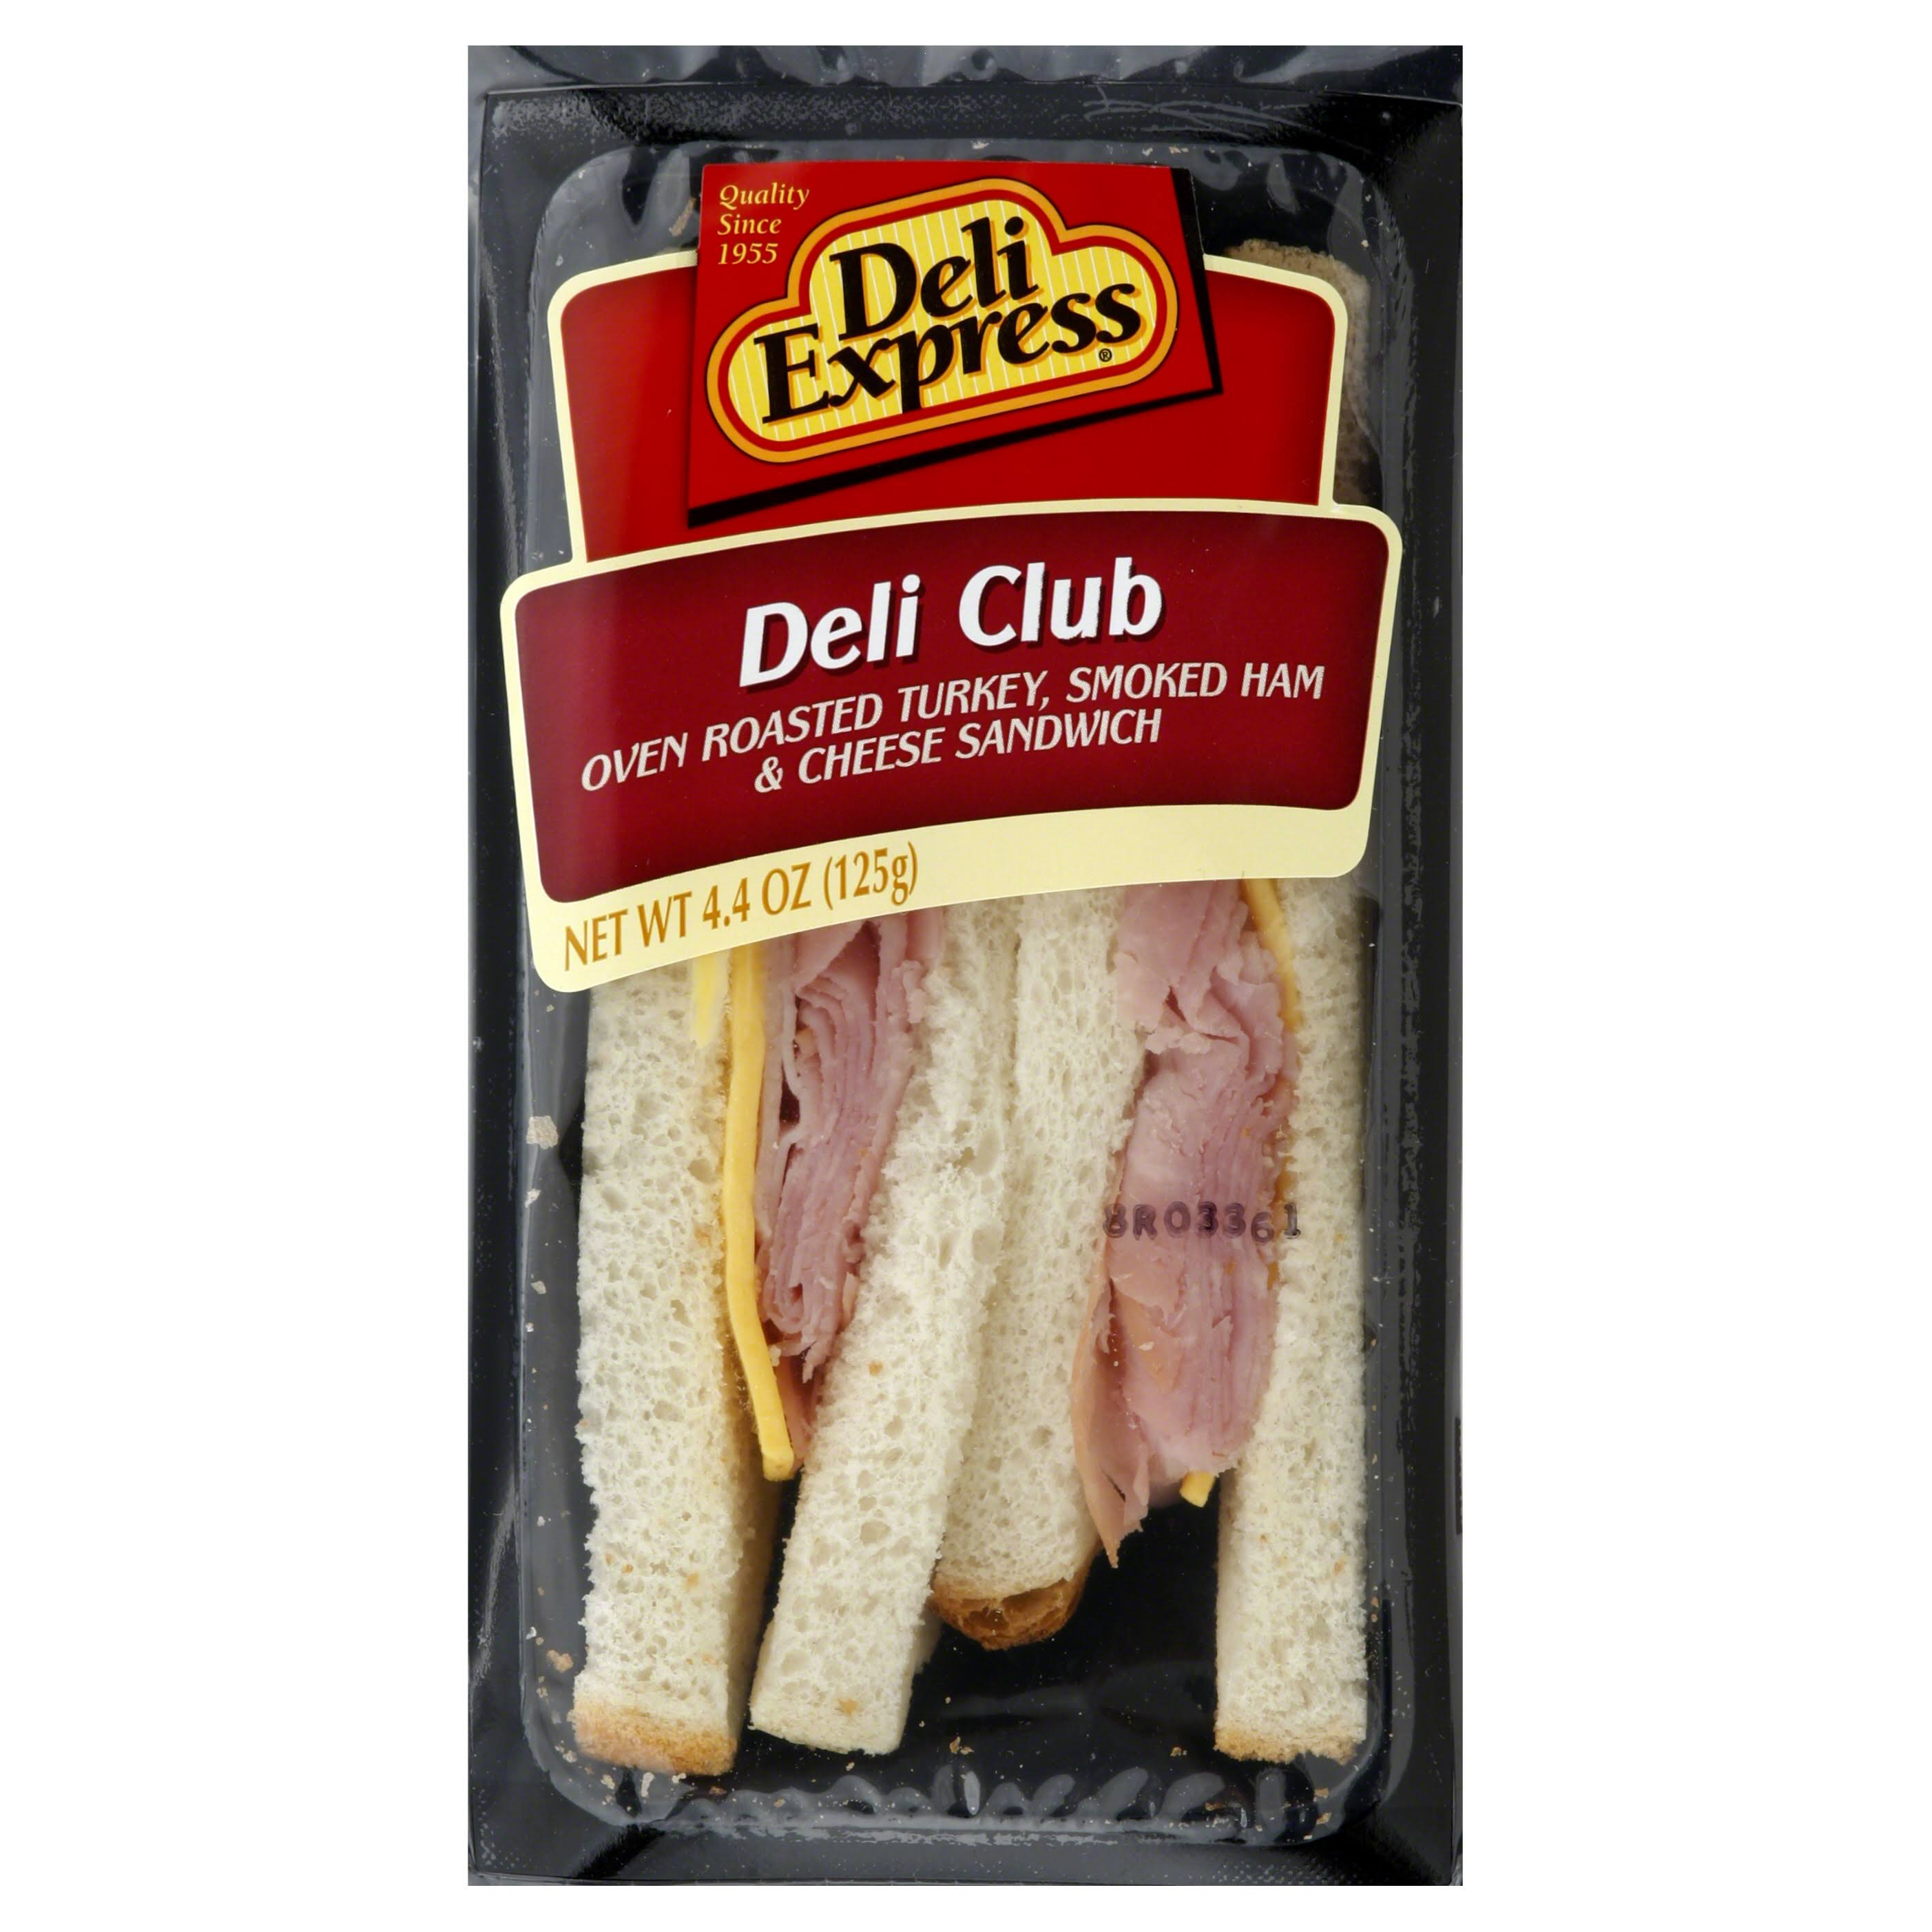 Deli Express Sandwich, Deli Club - 4.4 oz